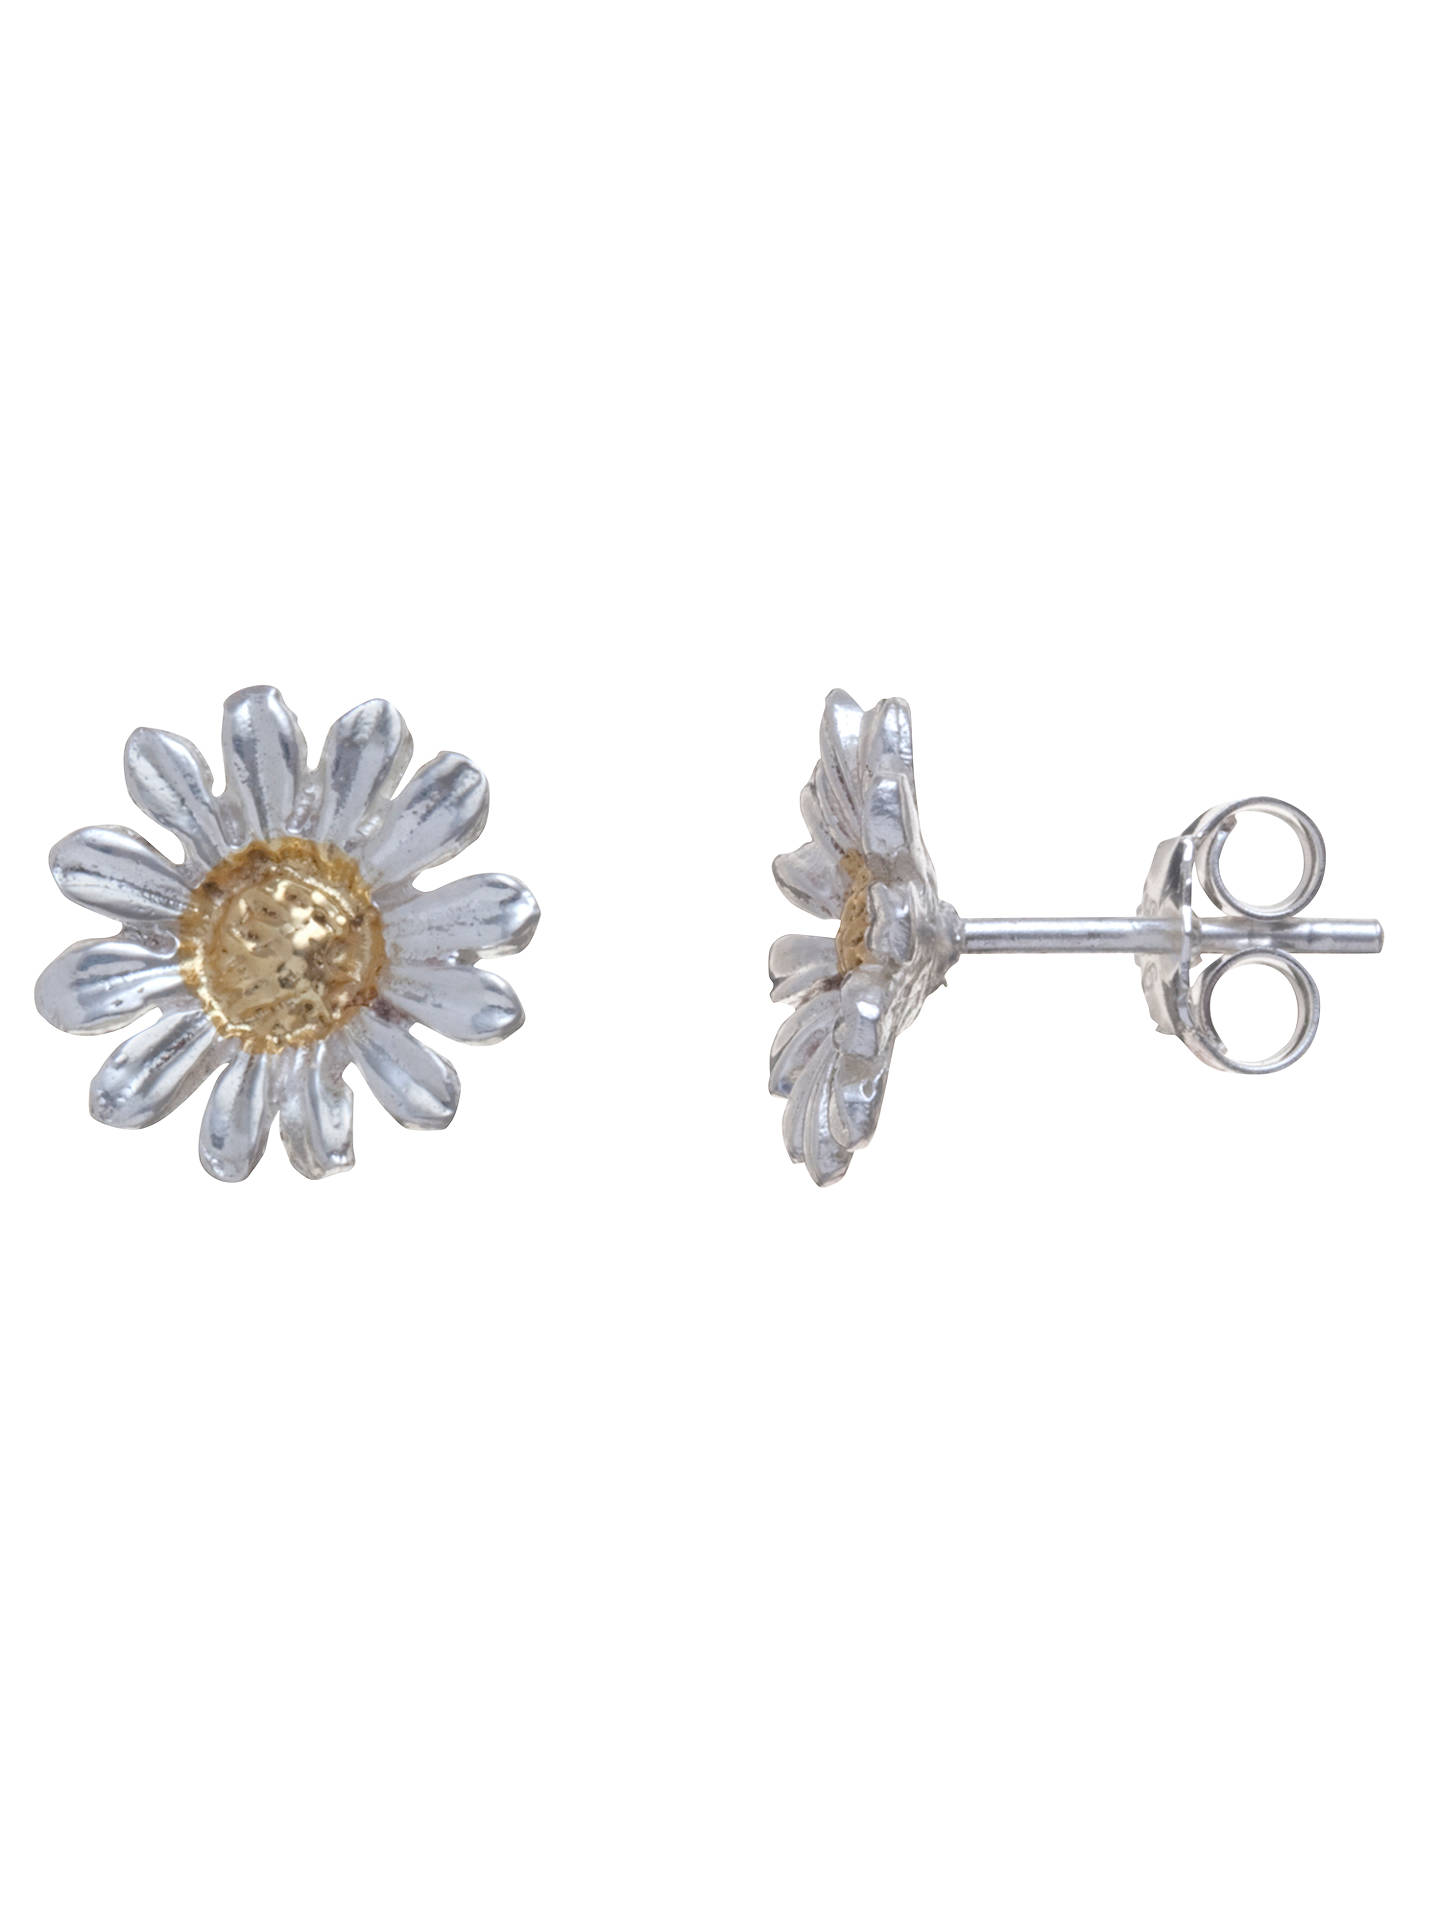 8a0f0e5f1 Buy Martick Sterling Silver Daisy Stud Earrings, Silver / Gold Online at  johnlewis.com